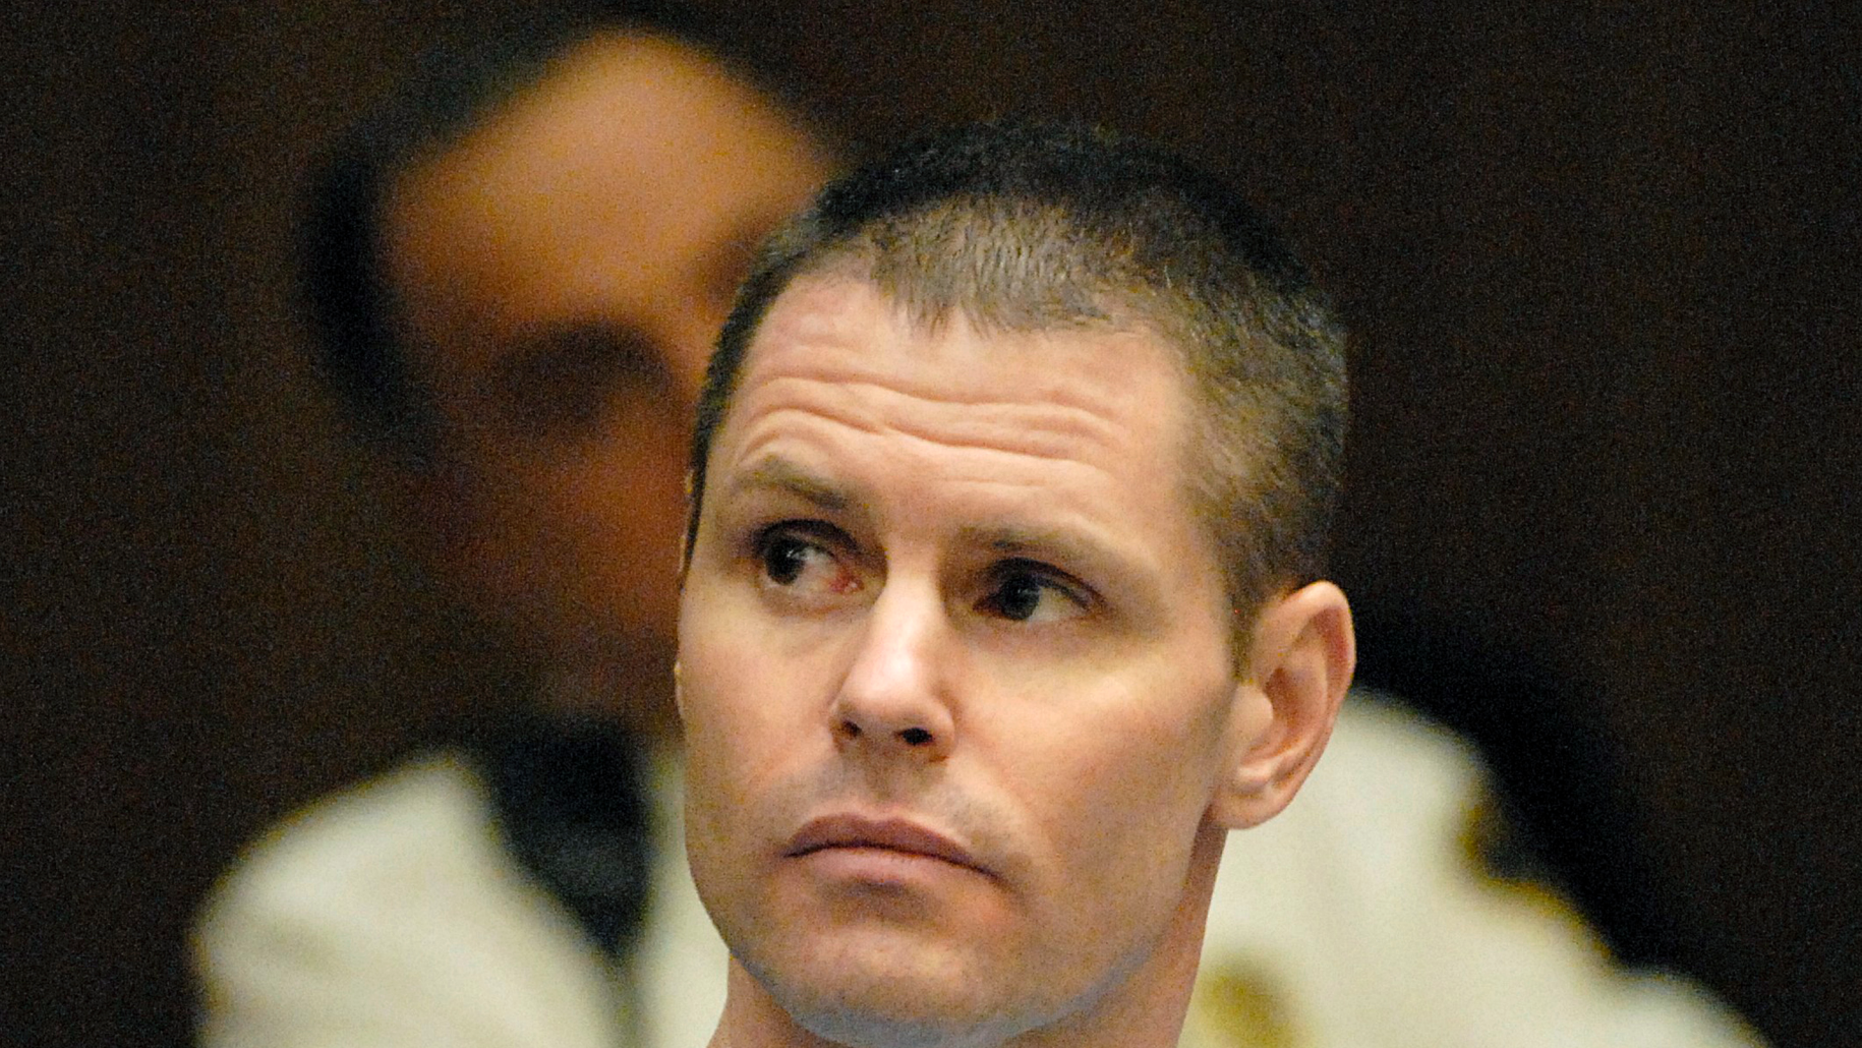 "In this April 14, 2009 photo, Fotios ""Freddy"" Geas appears for a court proceeding in his defense in the Al Bruno murder case, in Springfield, Mass. Geas and at least one other inmate are being investigated as suspects in the slaying of former Boston crime boss James ""Whitey"" Bulger, who was killed behind bars on Tuesday, Oct. 30, 2018, less than 24 hours after being transferred to a federal prison in West Virginia, according to a former investigator briefed on the matter. (Don Treeger /The Republican via AP)"